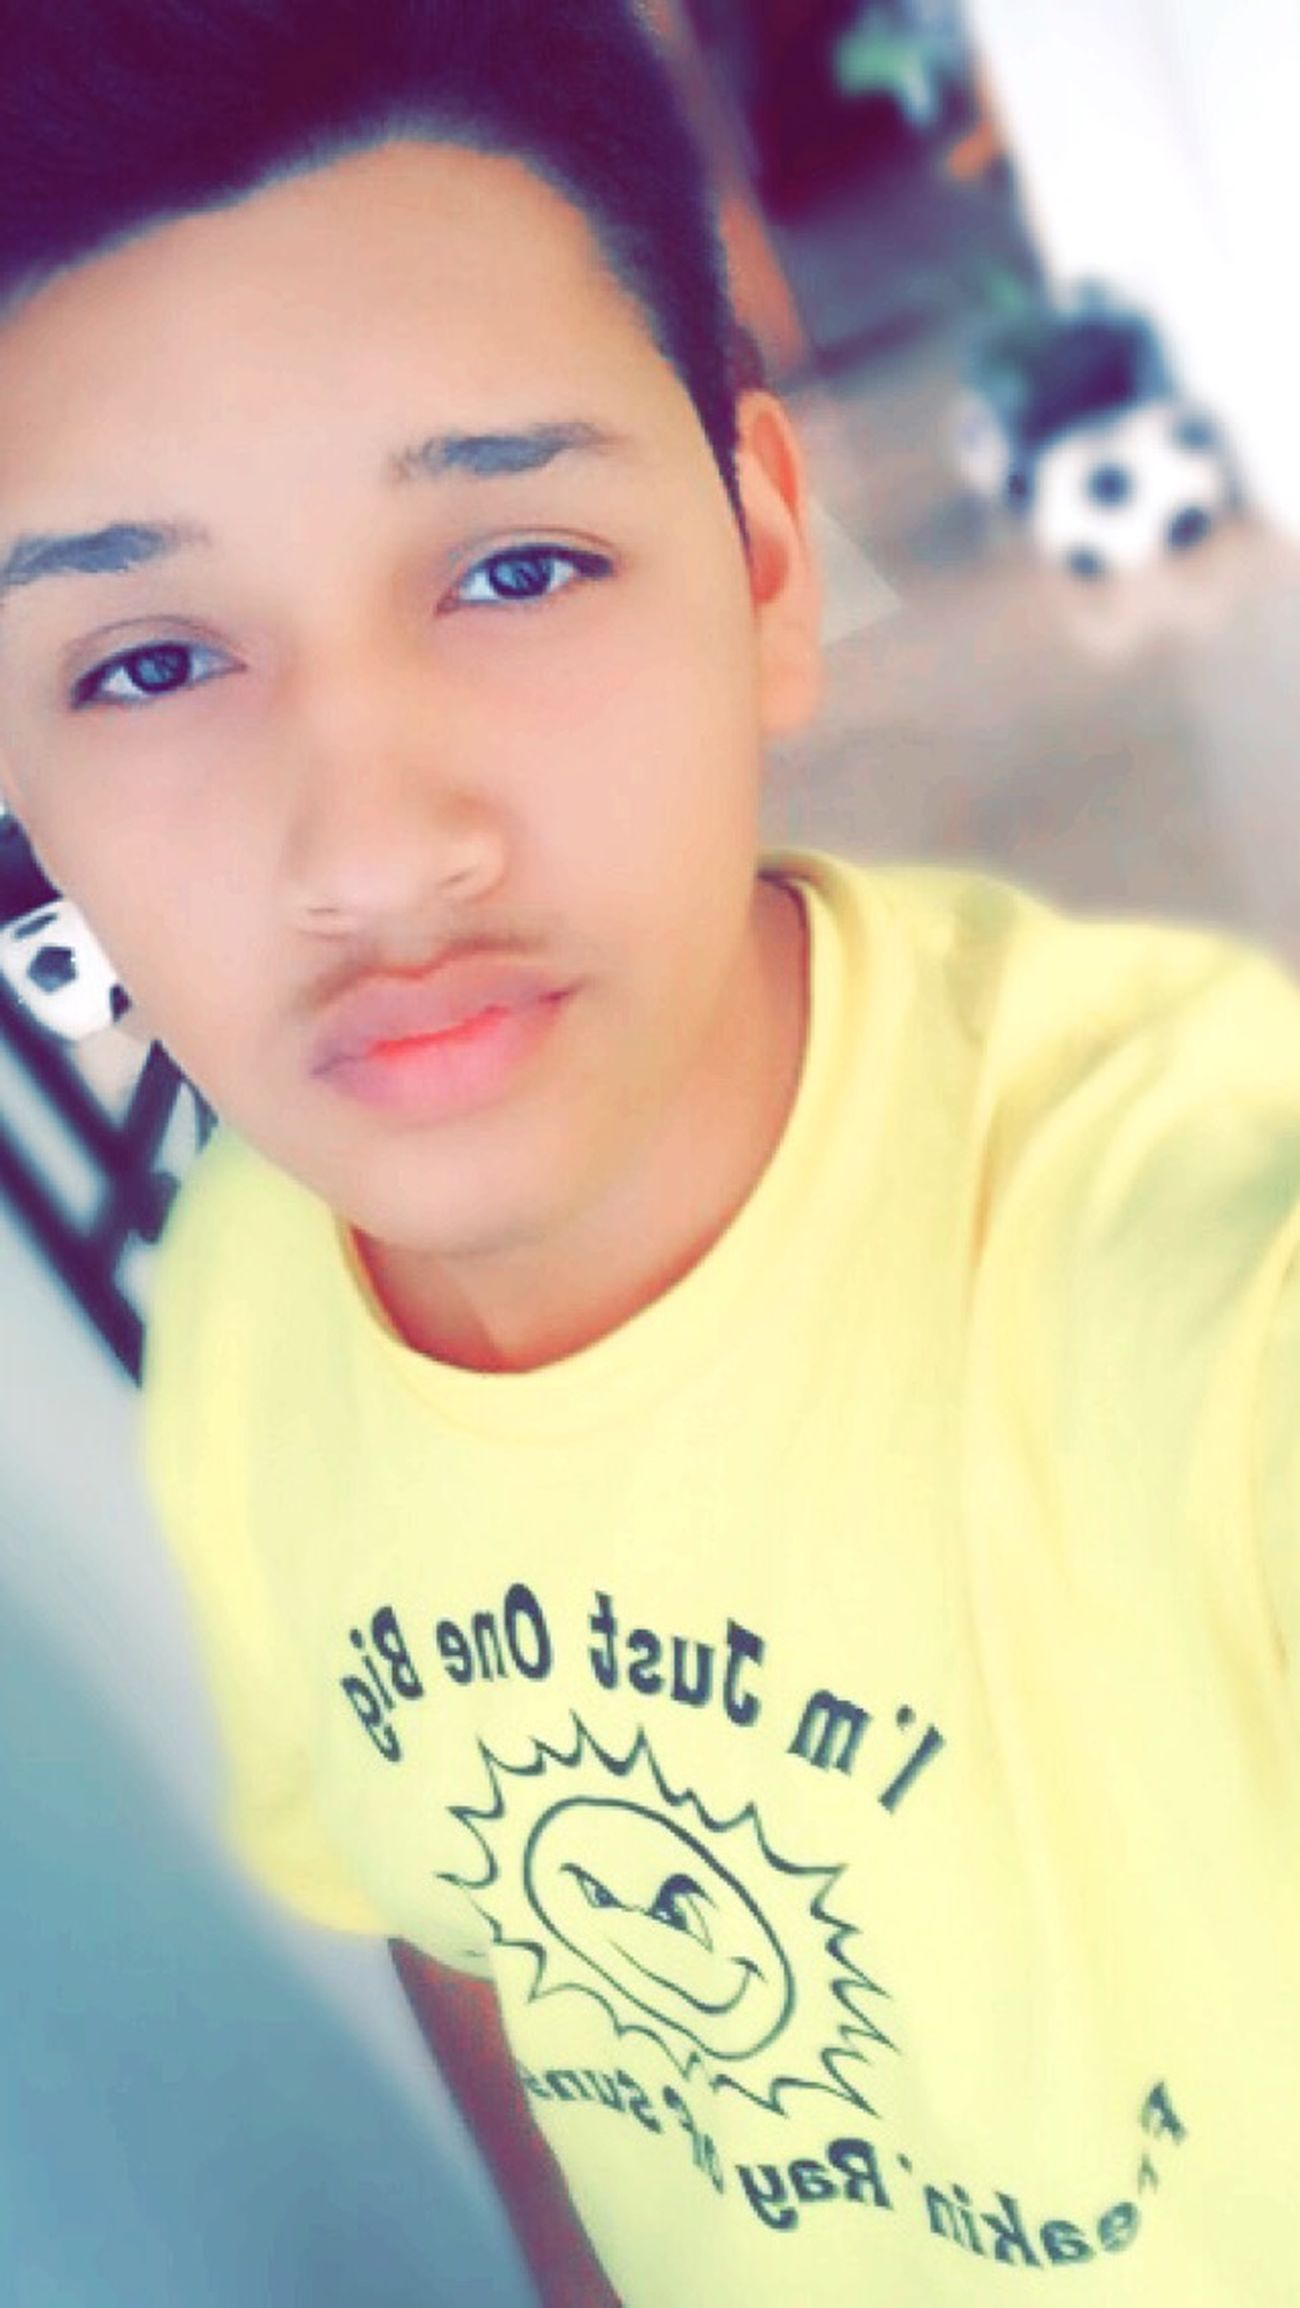 Hipster Happy :) WilverGomez Handsome Boy Today's Hot Look Followme That's Me Handsome😍 Selfie ✌ Hot